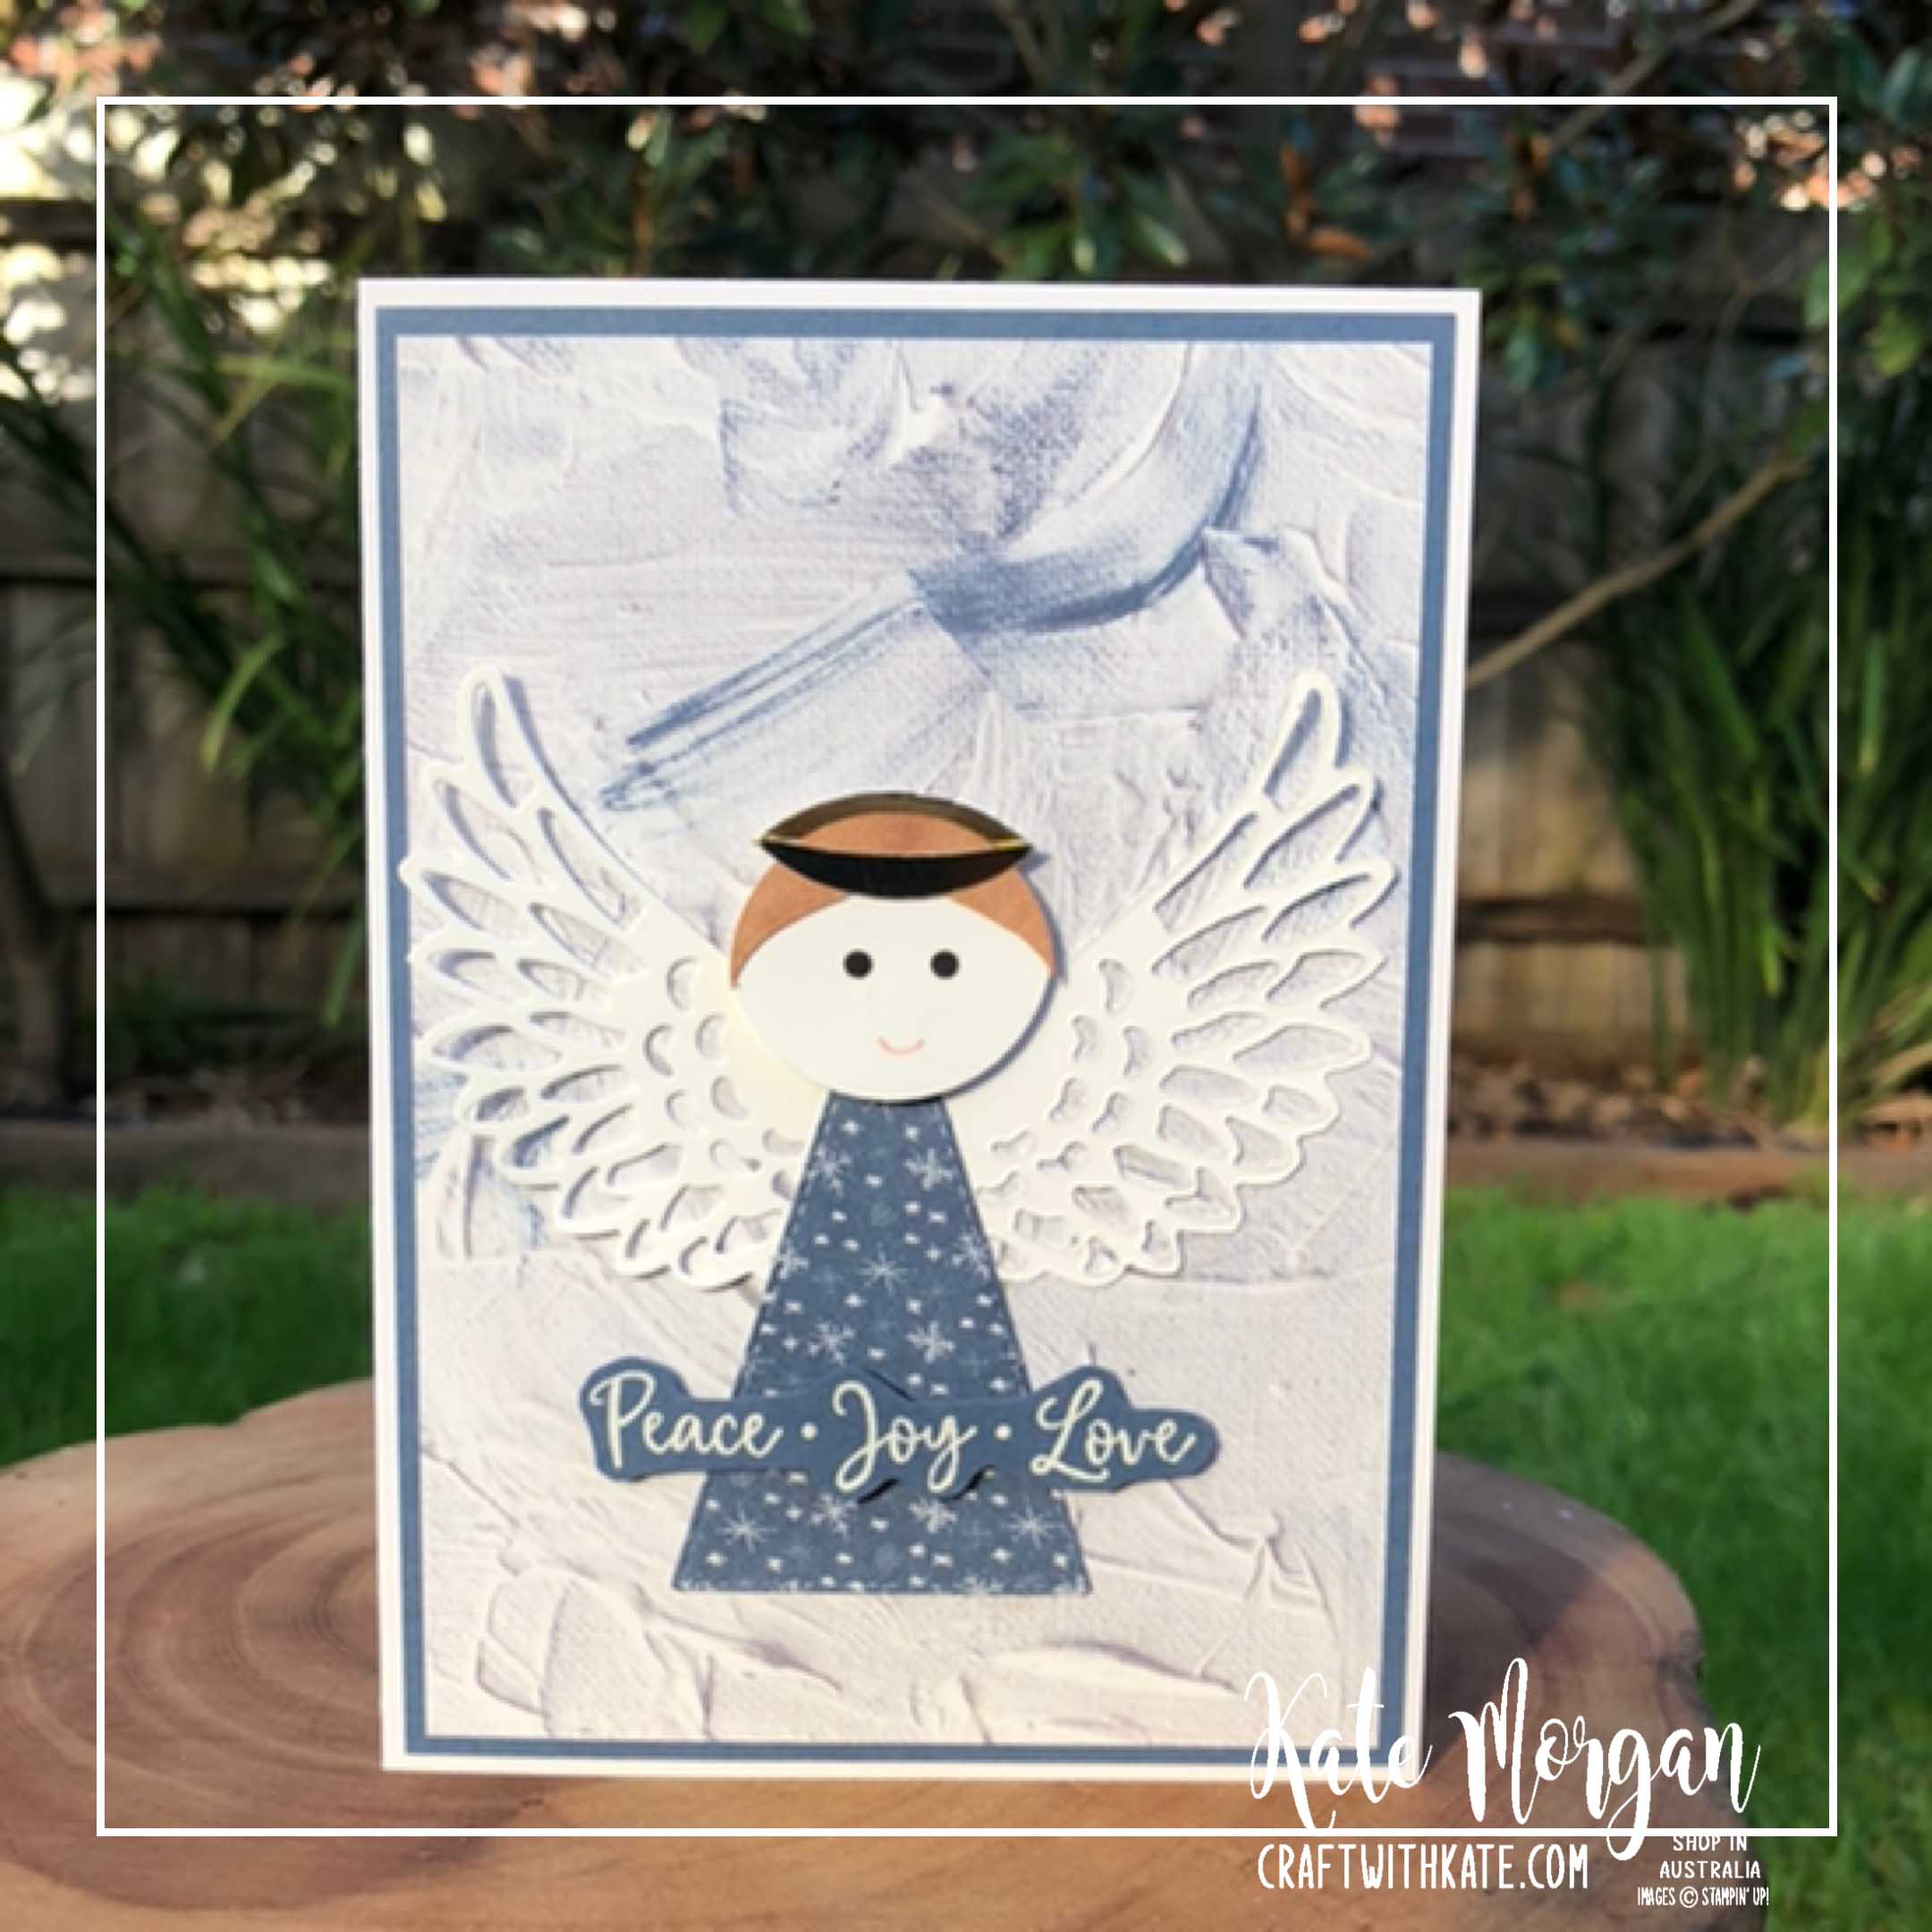 Christmas Angel by Kate Morgan Stampin Up Australia 2020 Aug-Dec Mini catalogue Dove of Hope